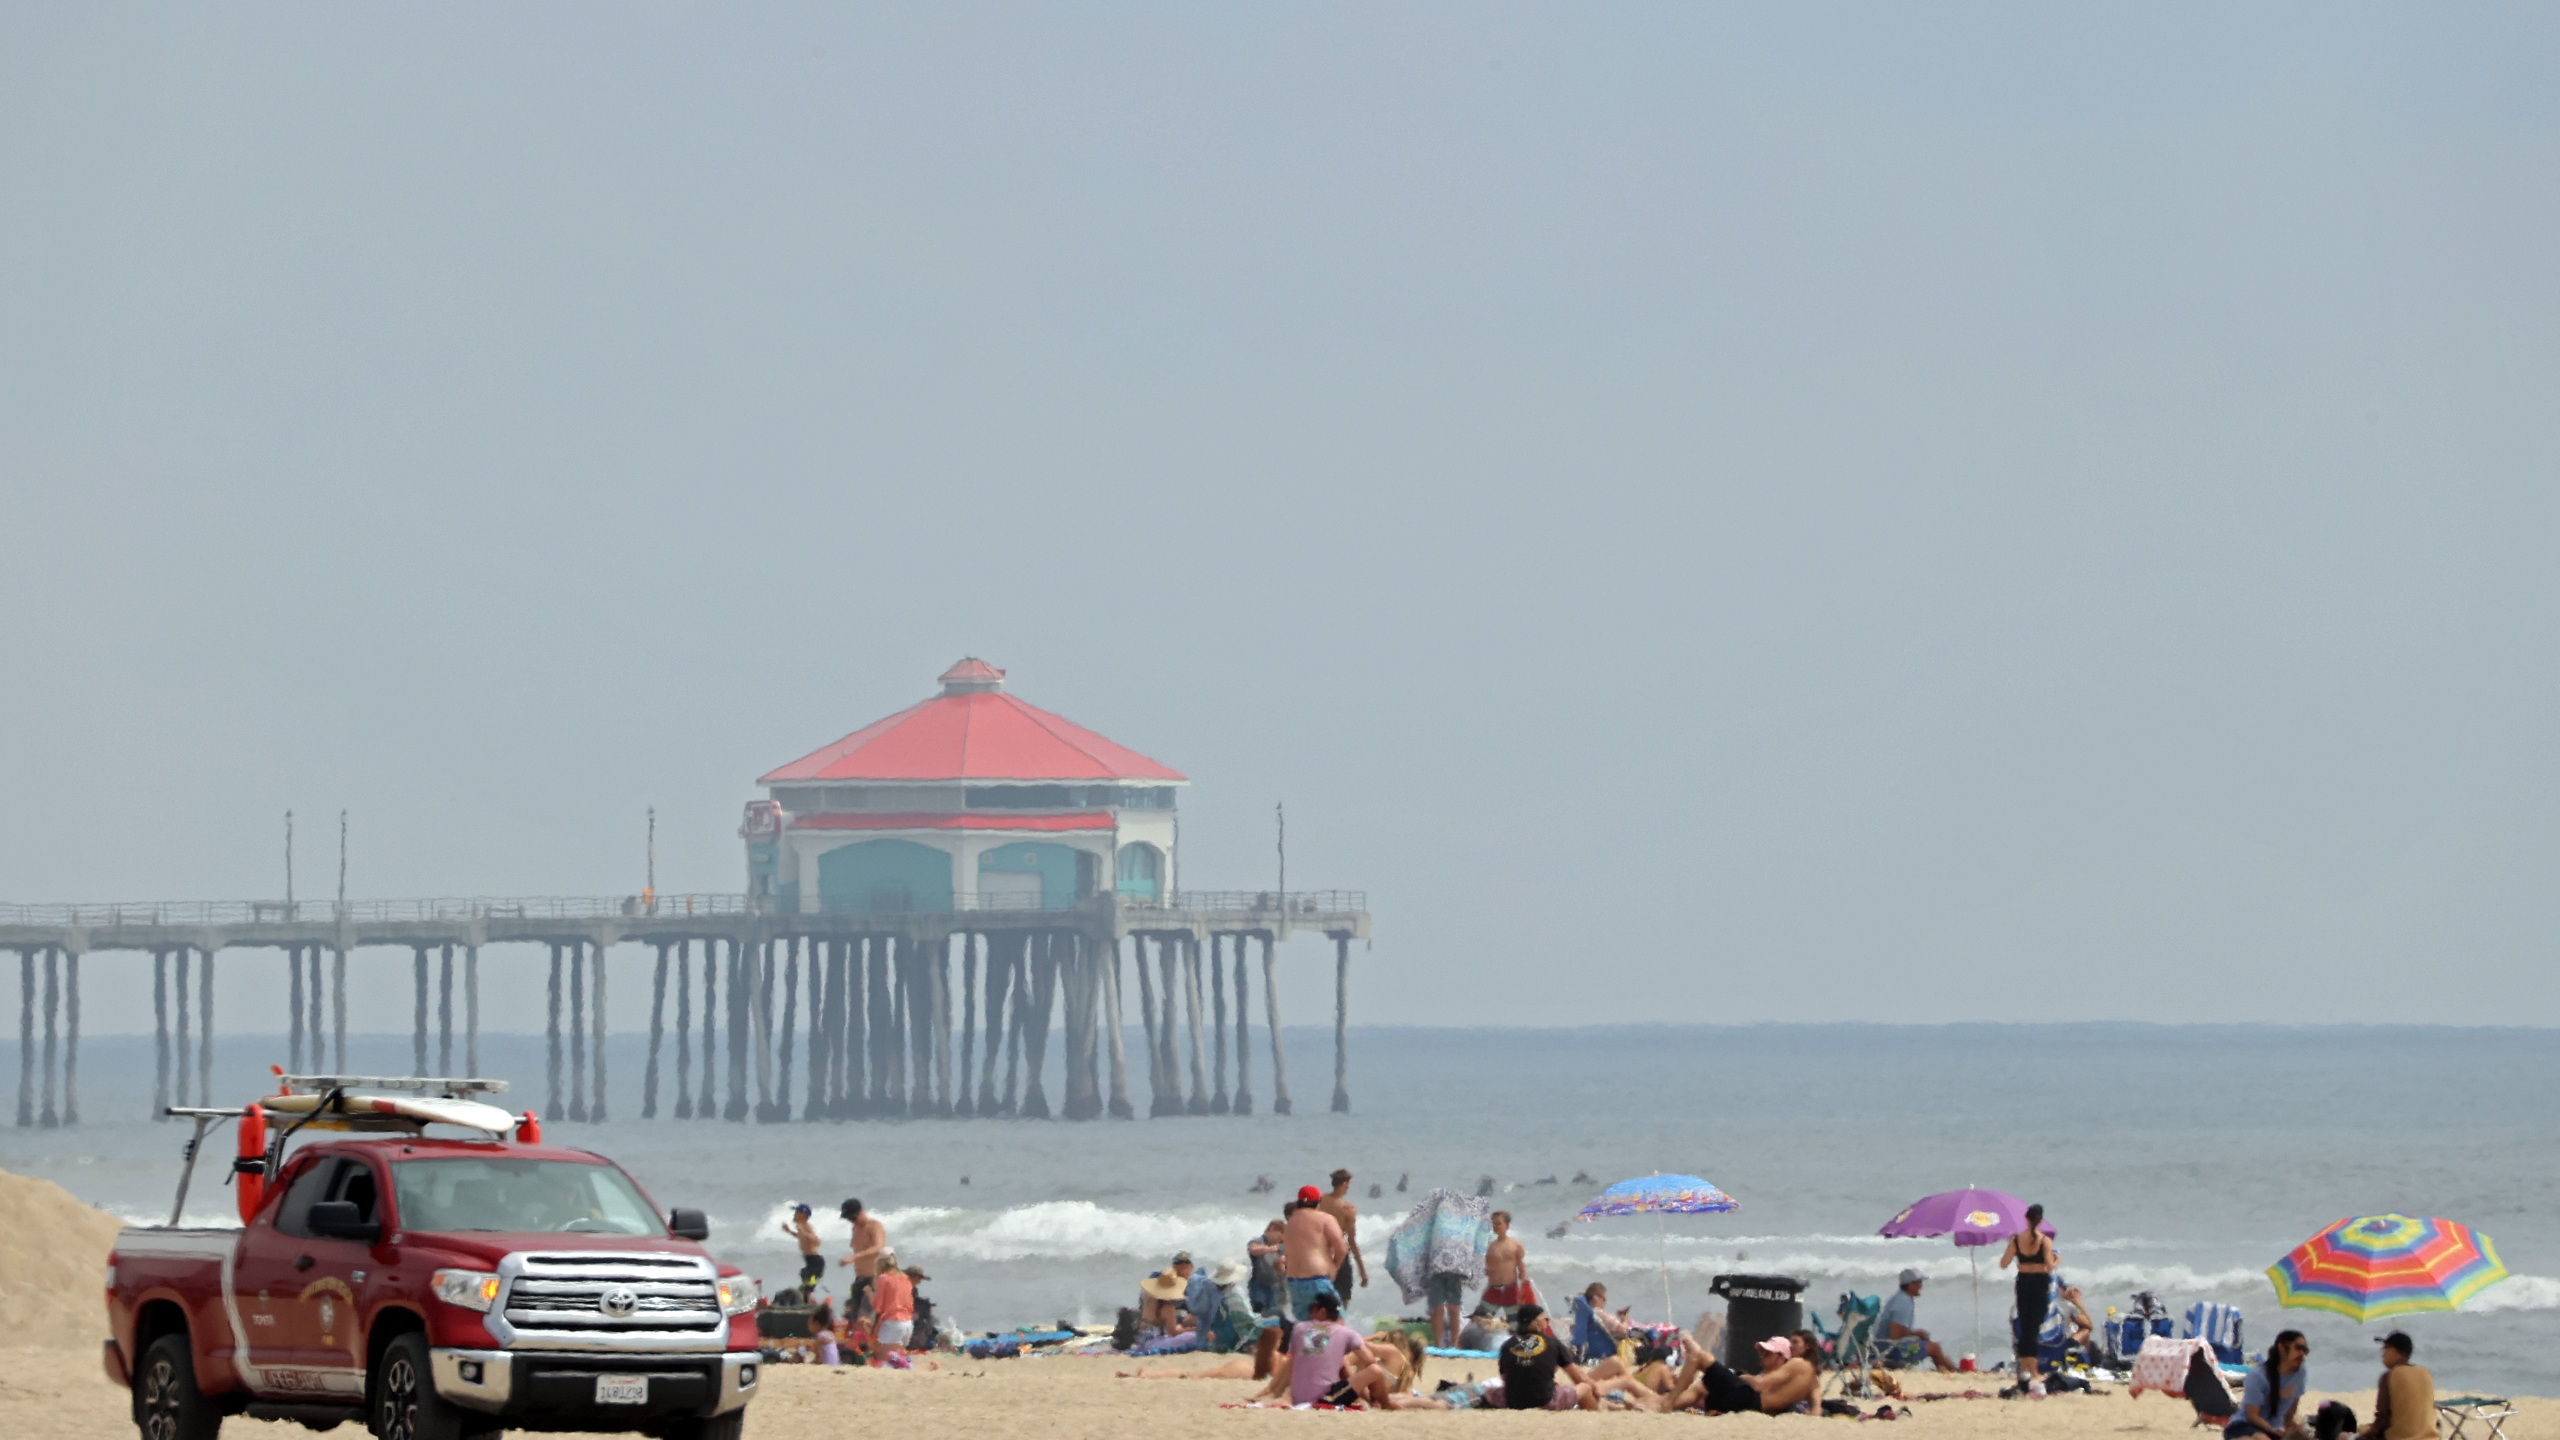 A lifeguard patrols as people gather in front of the Huntington Beach pier on April 30, 2020. (Credit: Michael Heiman / Getty Images)